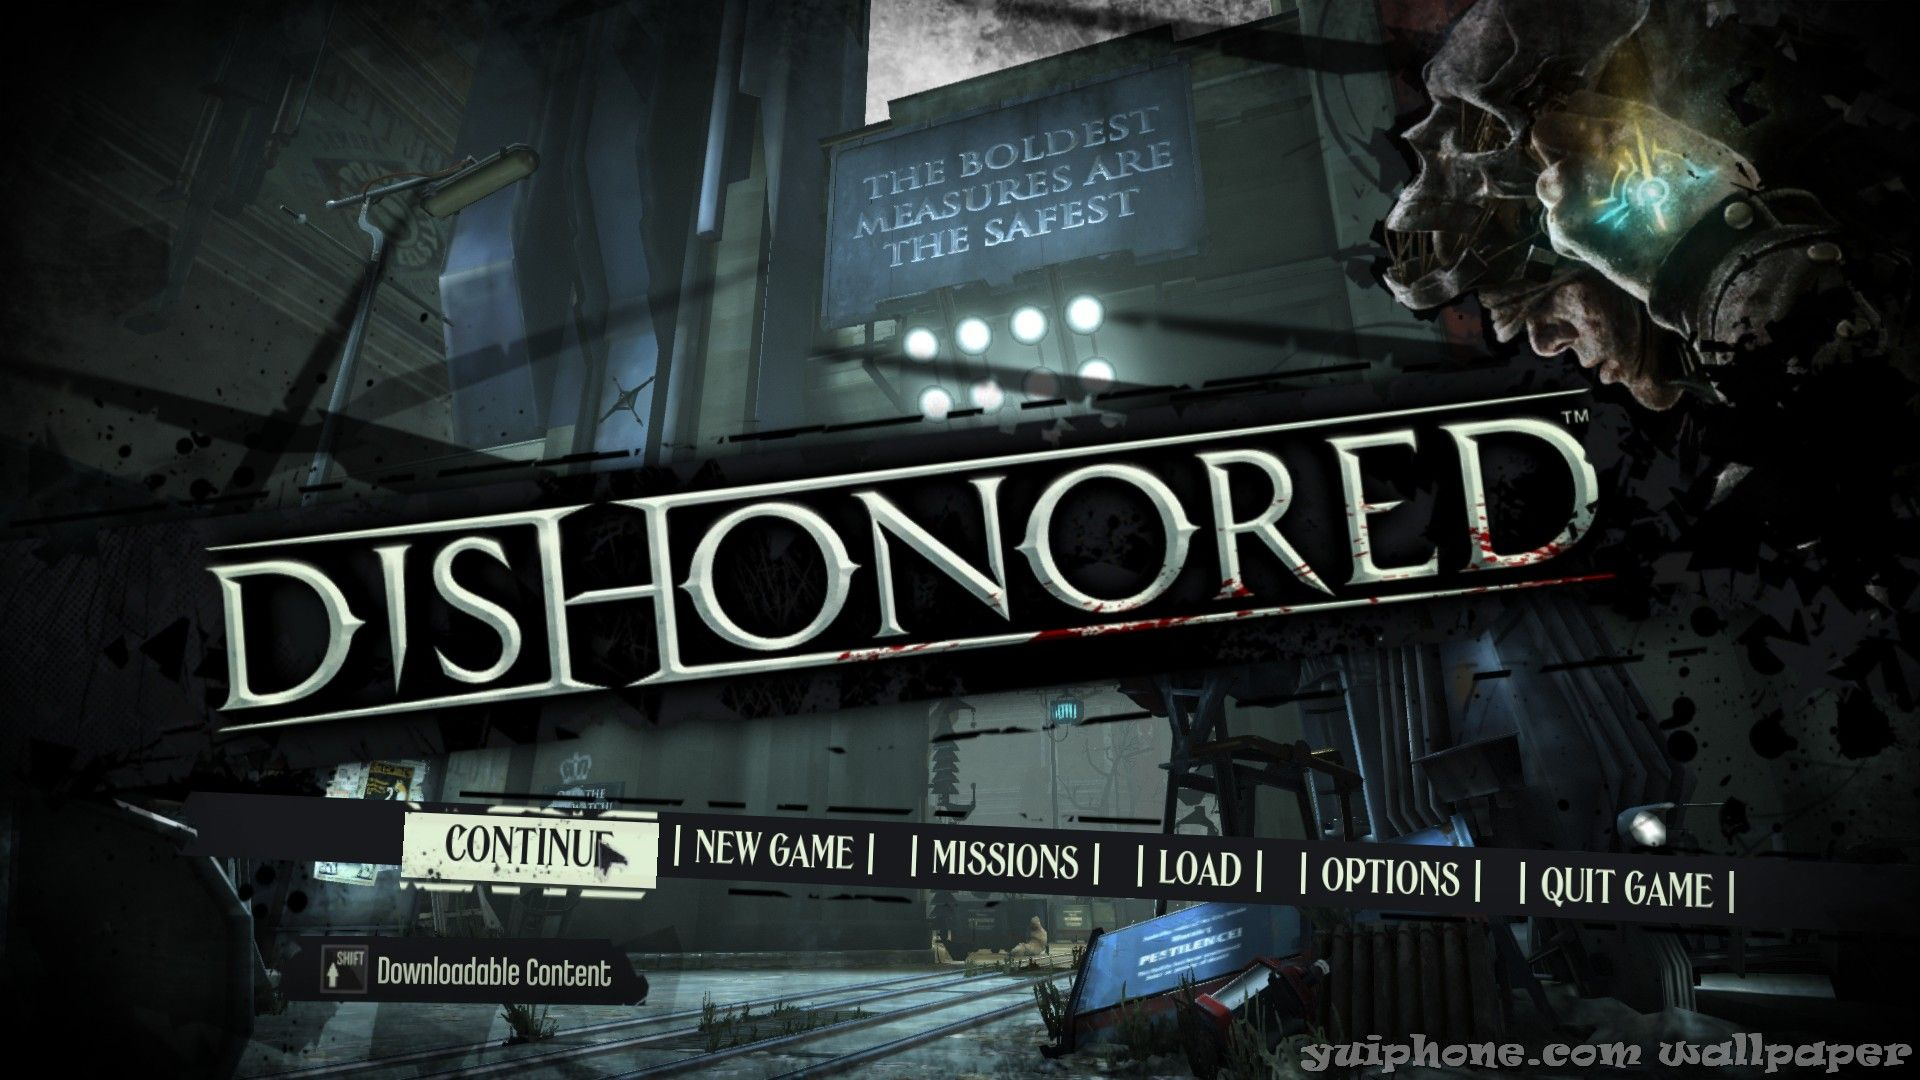 Dishonored - menu - Thesis - Game title, Game ui, Game logo